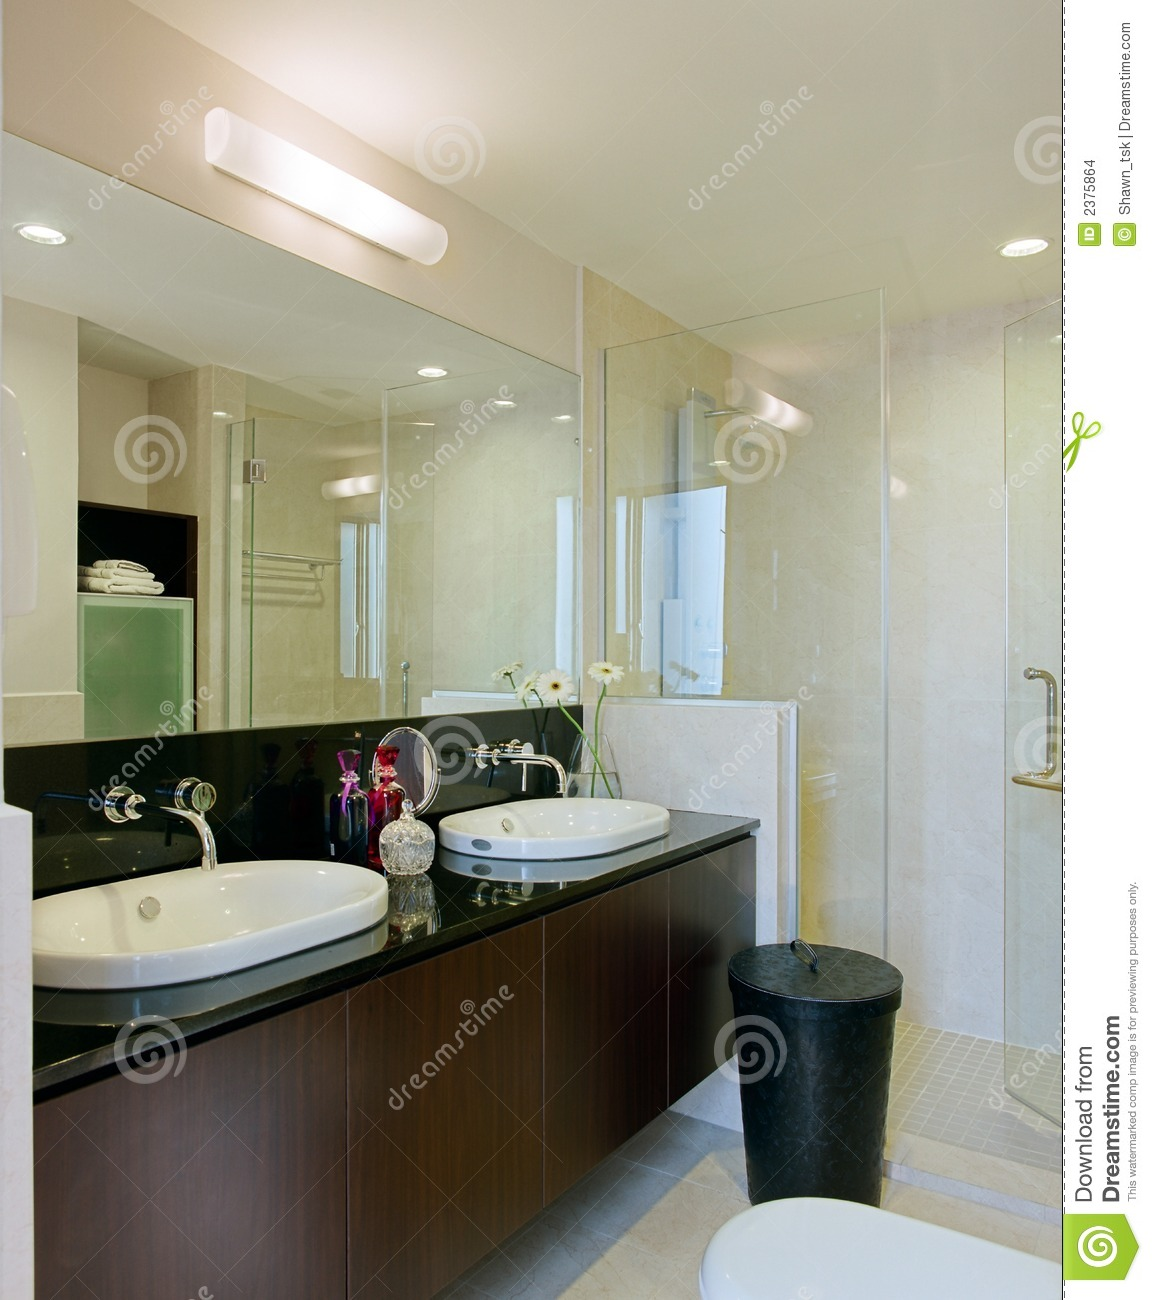 Innenarchitektur Badezimmer Interior Design Bathroom Stock Images Image 2375864